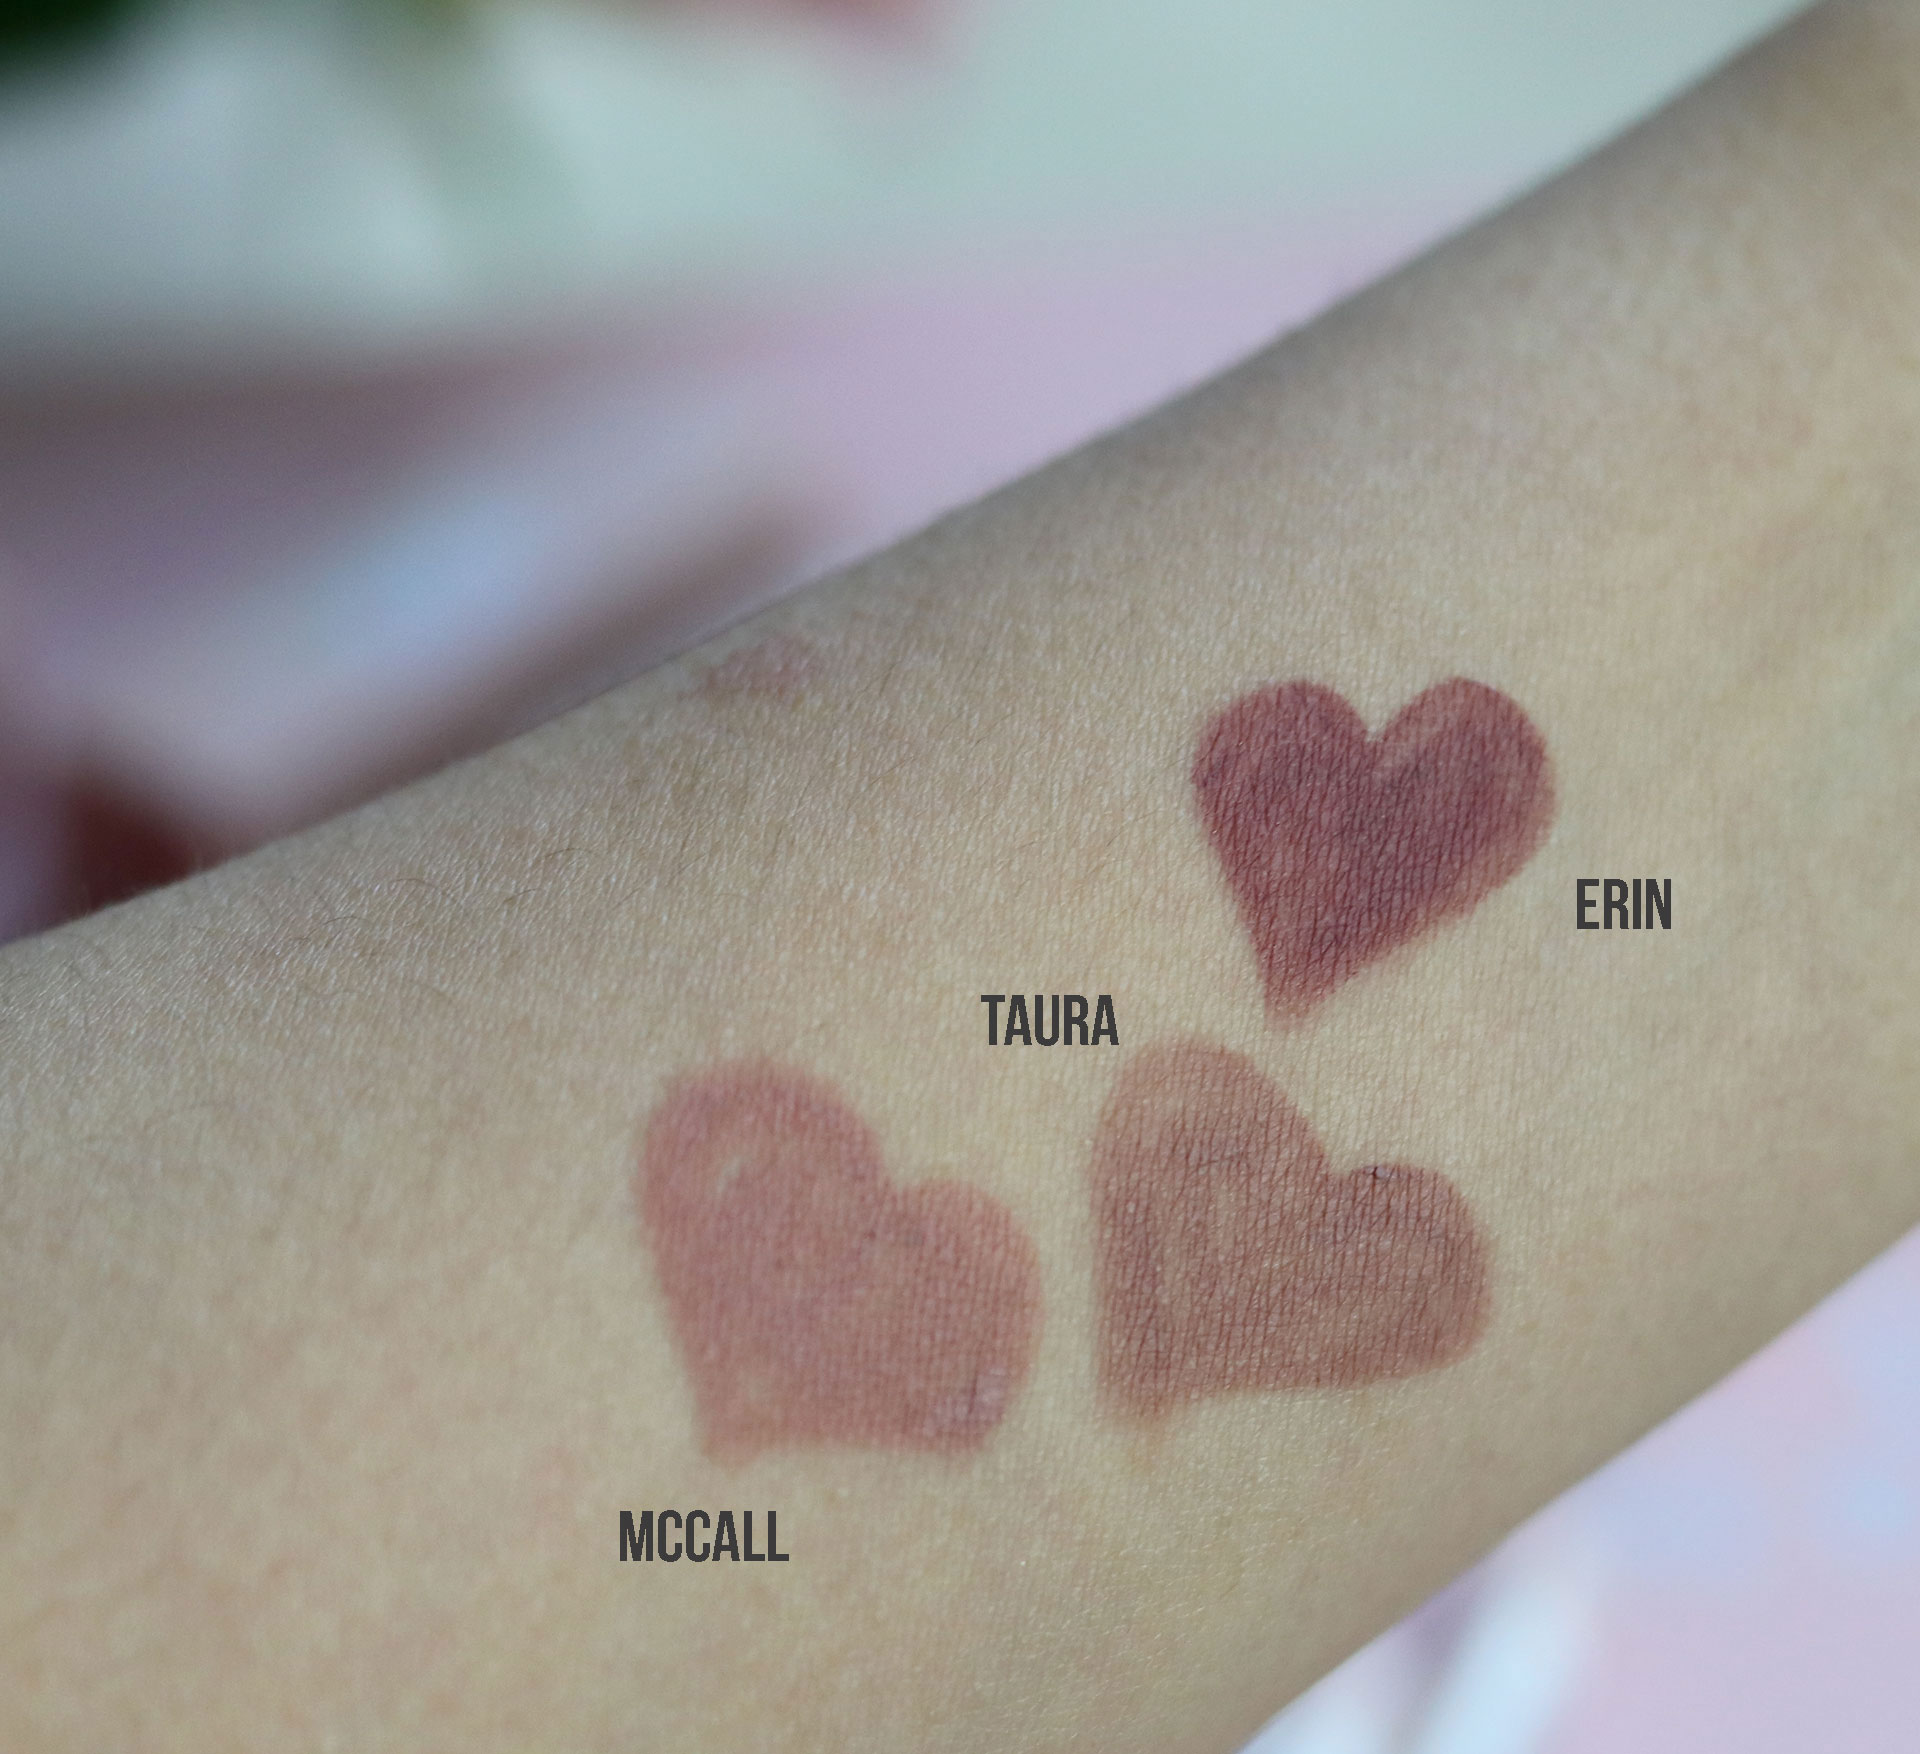 22 Gigi Hadid Maybelline Collection Review Swatches Photos - Gen-zel She Sings Beauty